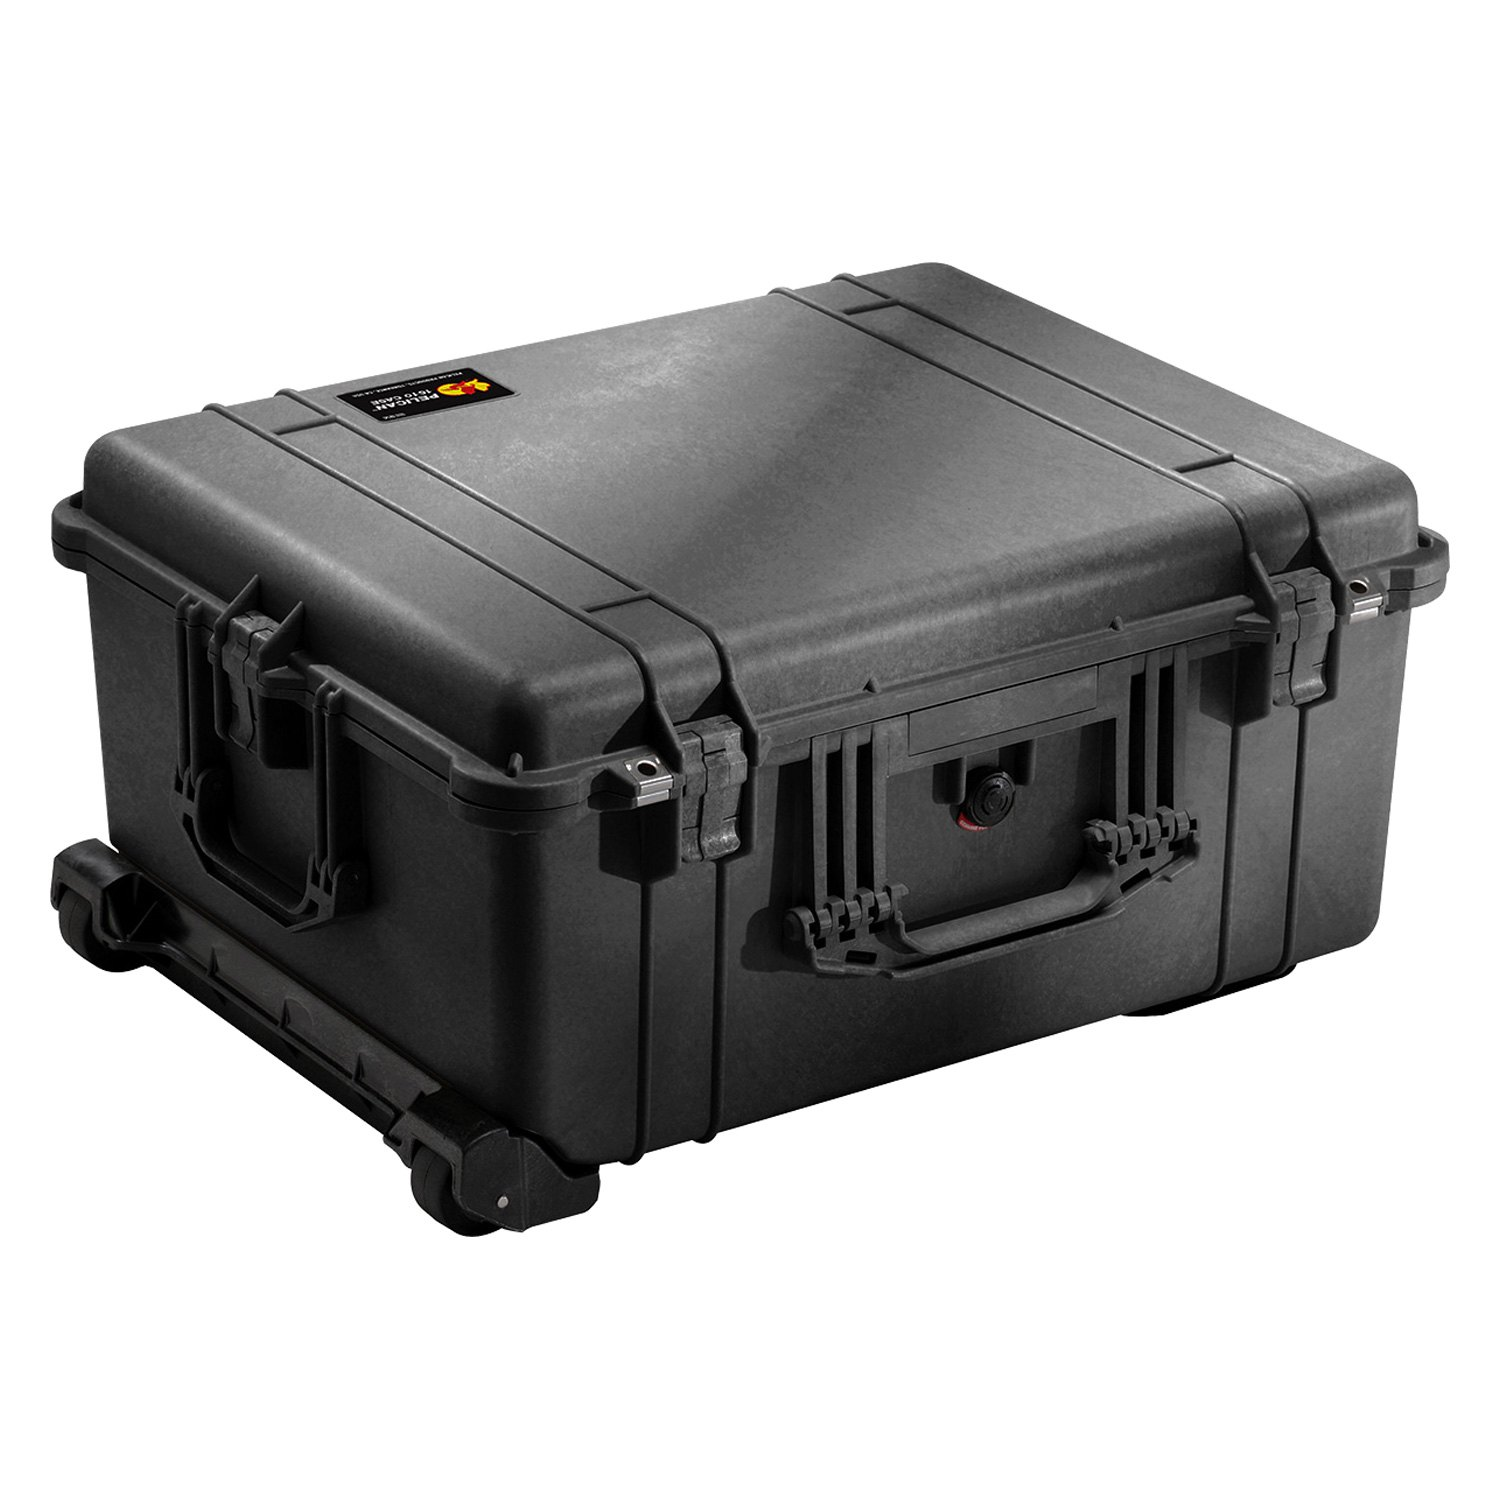 Pelican Protector Case 1610 Series Large Case